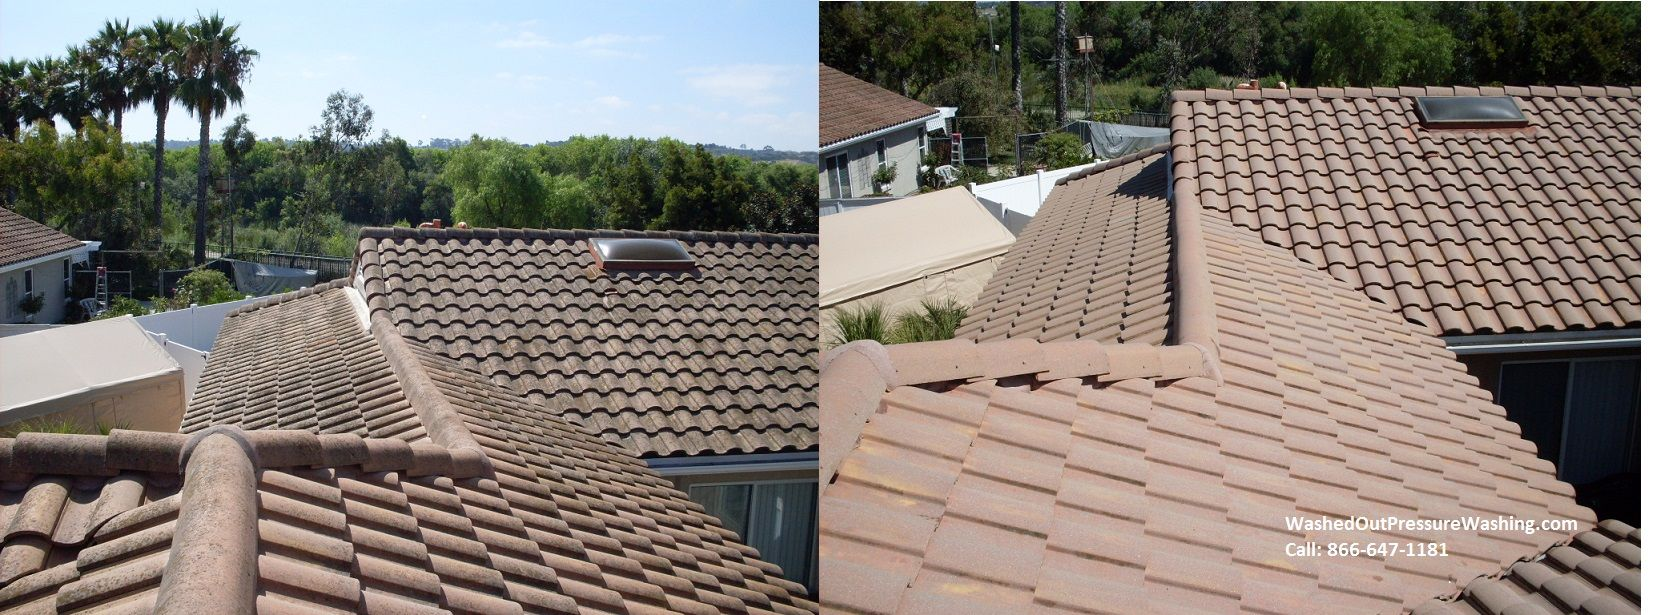 No More Black Growth After We Power Washed Steam Cleaned This Tile Roof Looks Much Better Now Roof Cleaning Pressure Washing Services Roof